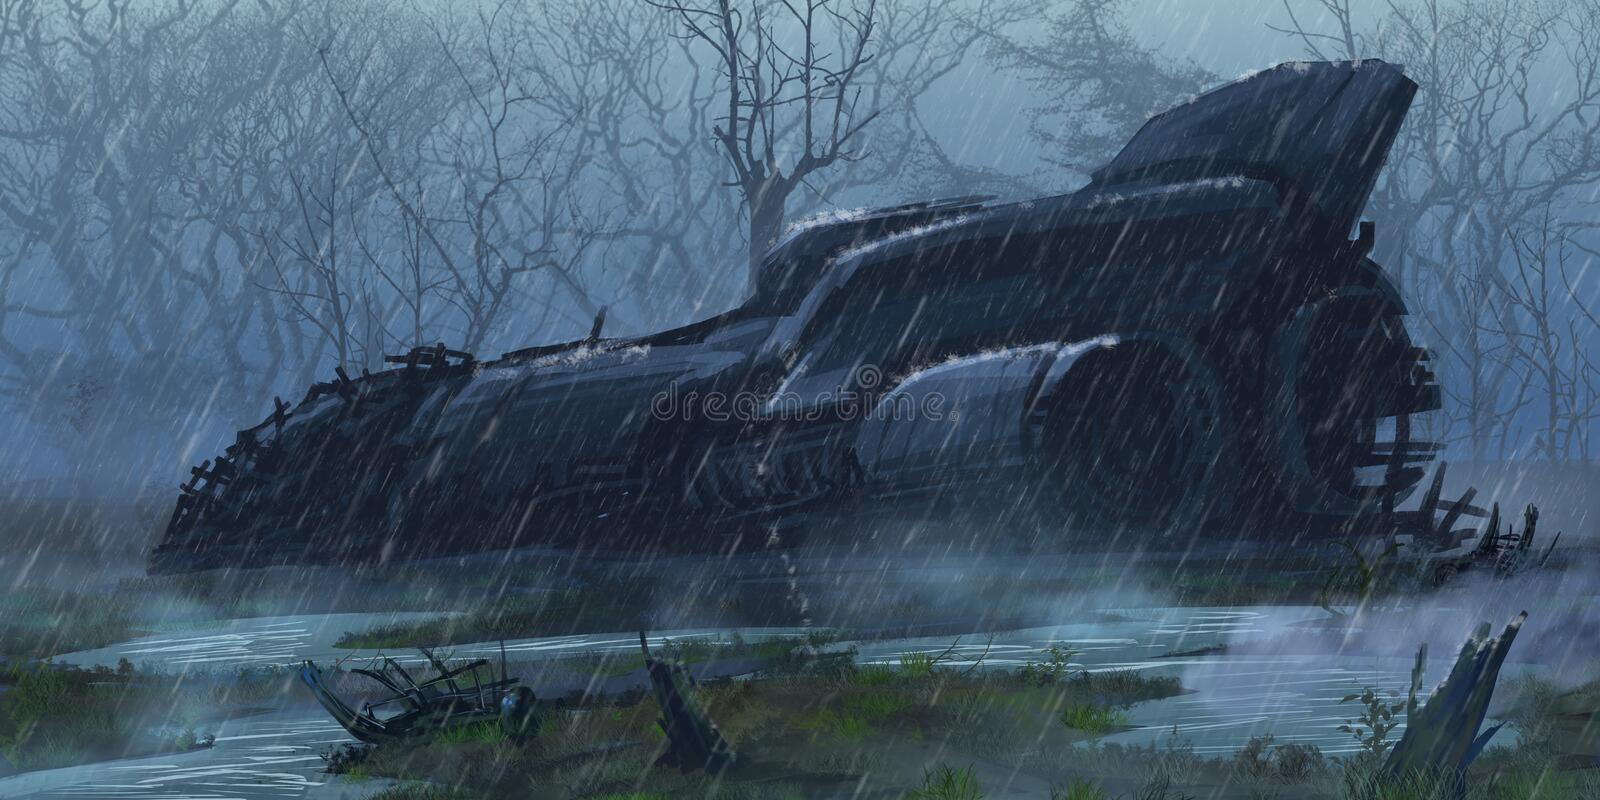 Crashed Spaceship in the Wet Land. Fiction Backdrop. Concept Art. Realistic Illustration. Video Game Digital CG Artwork. Nature Scenery stock illustration